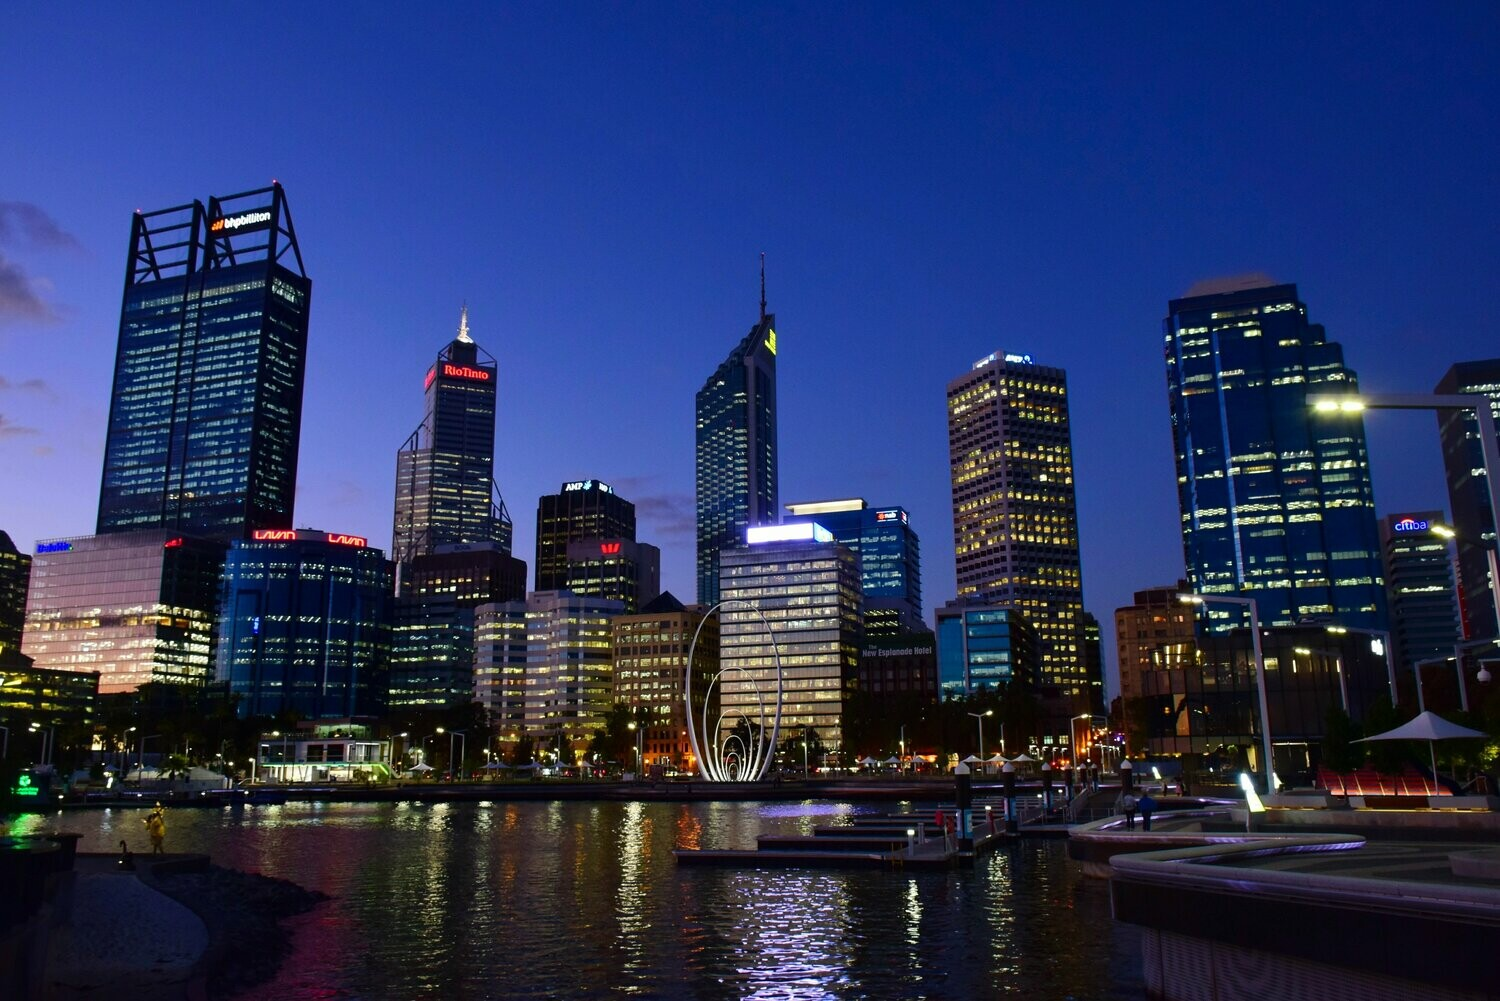 Perth City Night - Full Drill Diamond Painting - Specially ordered for you. Delivery is approximately 4 - 6 weeks.